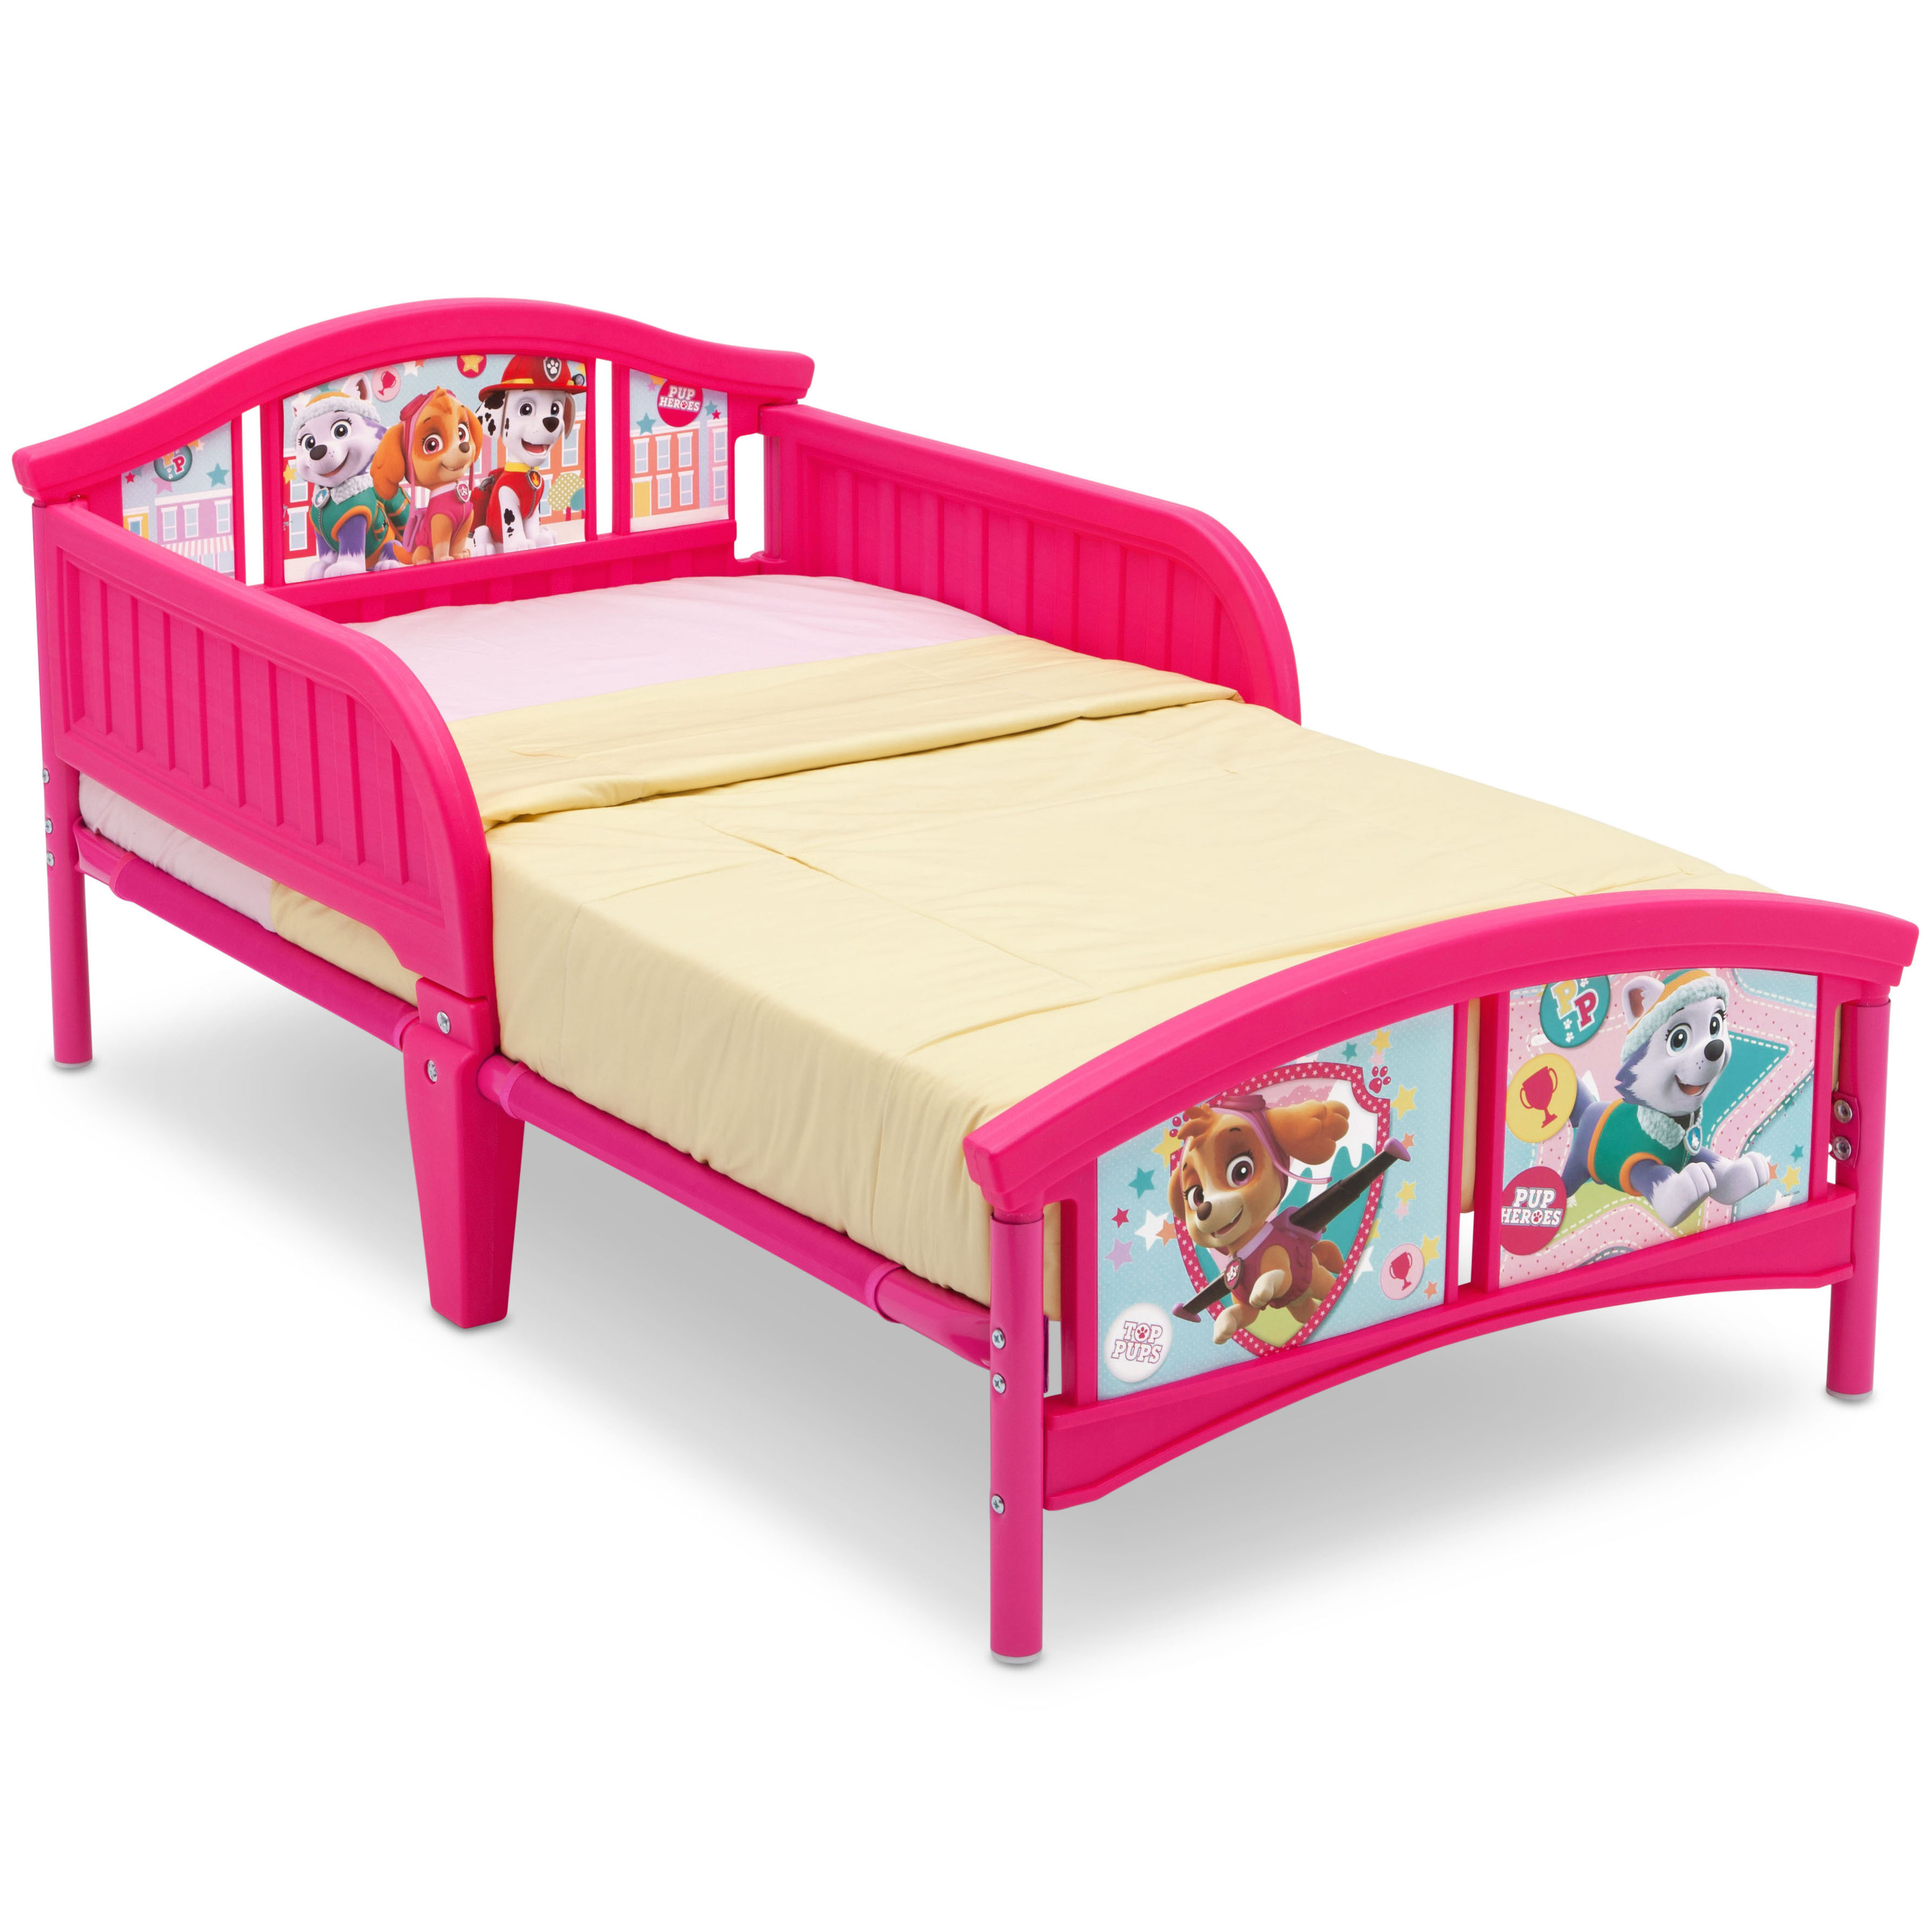 Paw Patrol Skye Amp Everest Plastic Toddler Bed Walmart Com